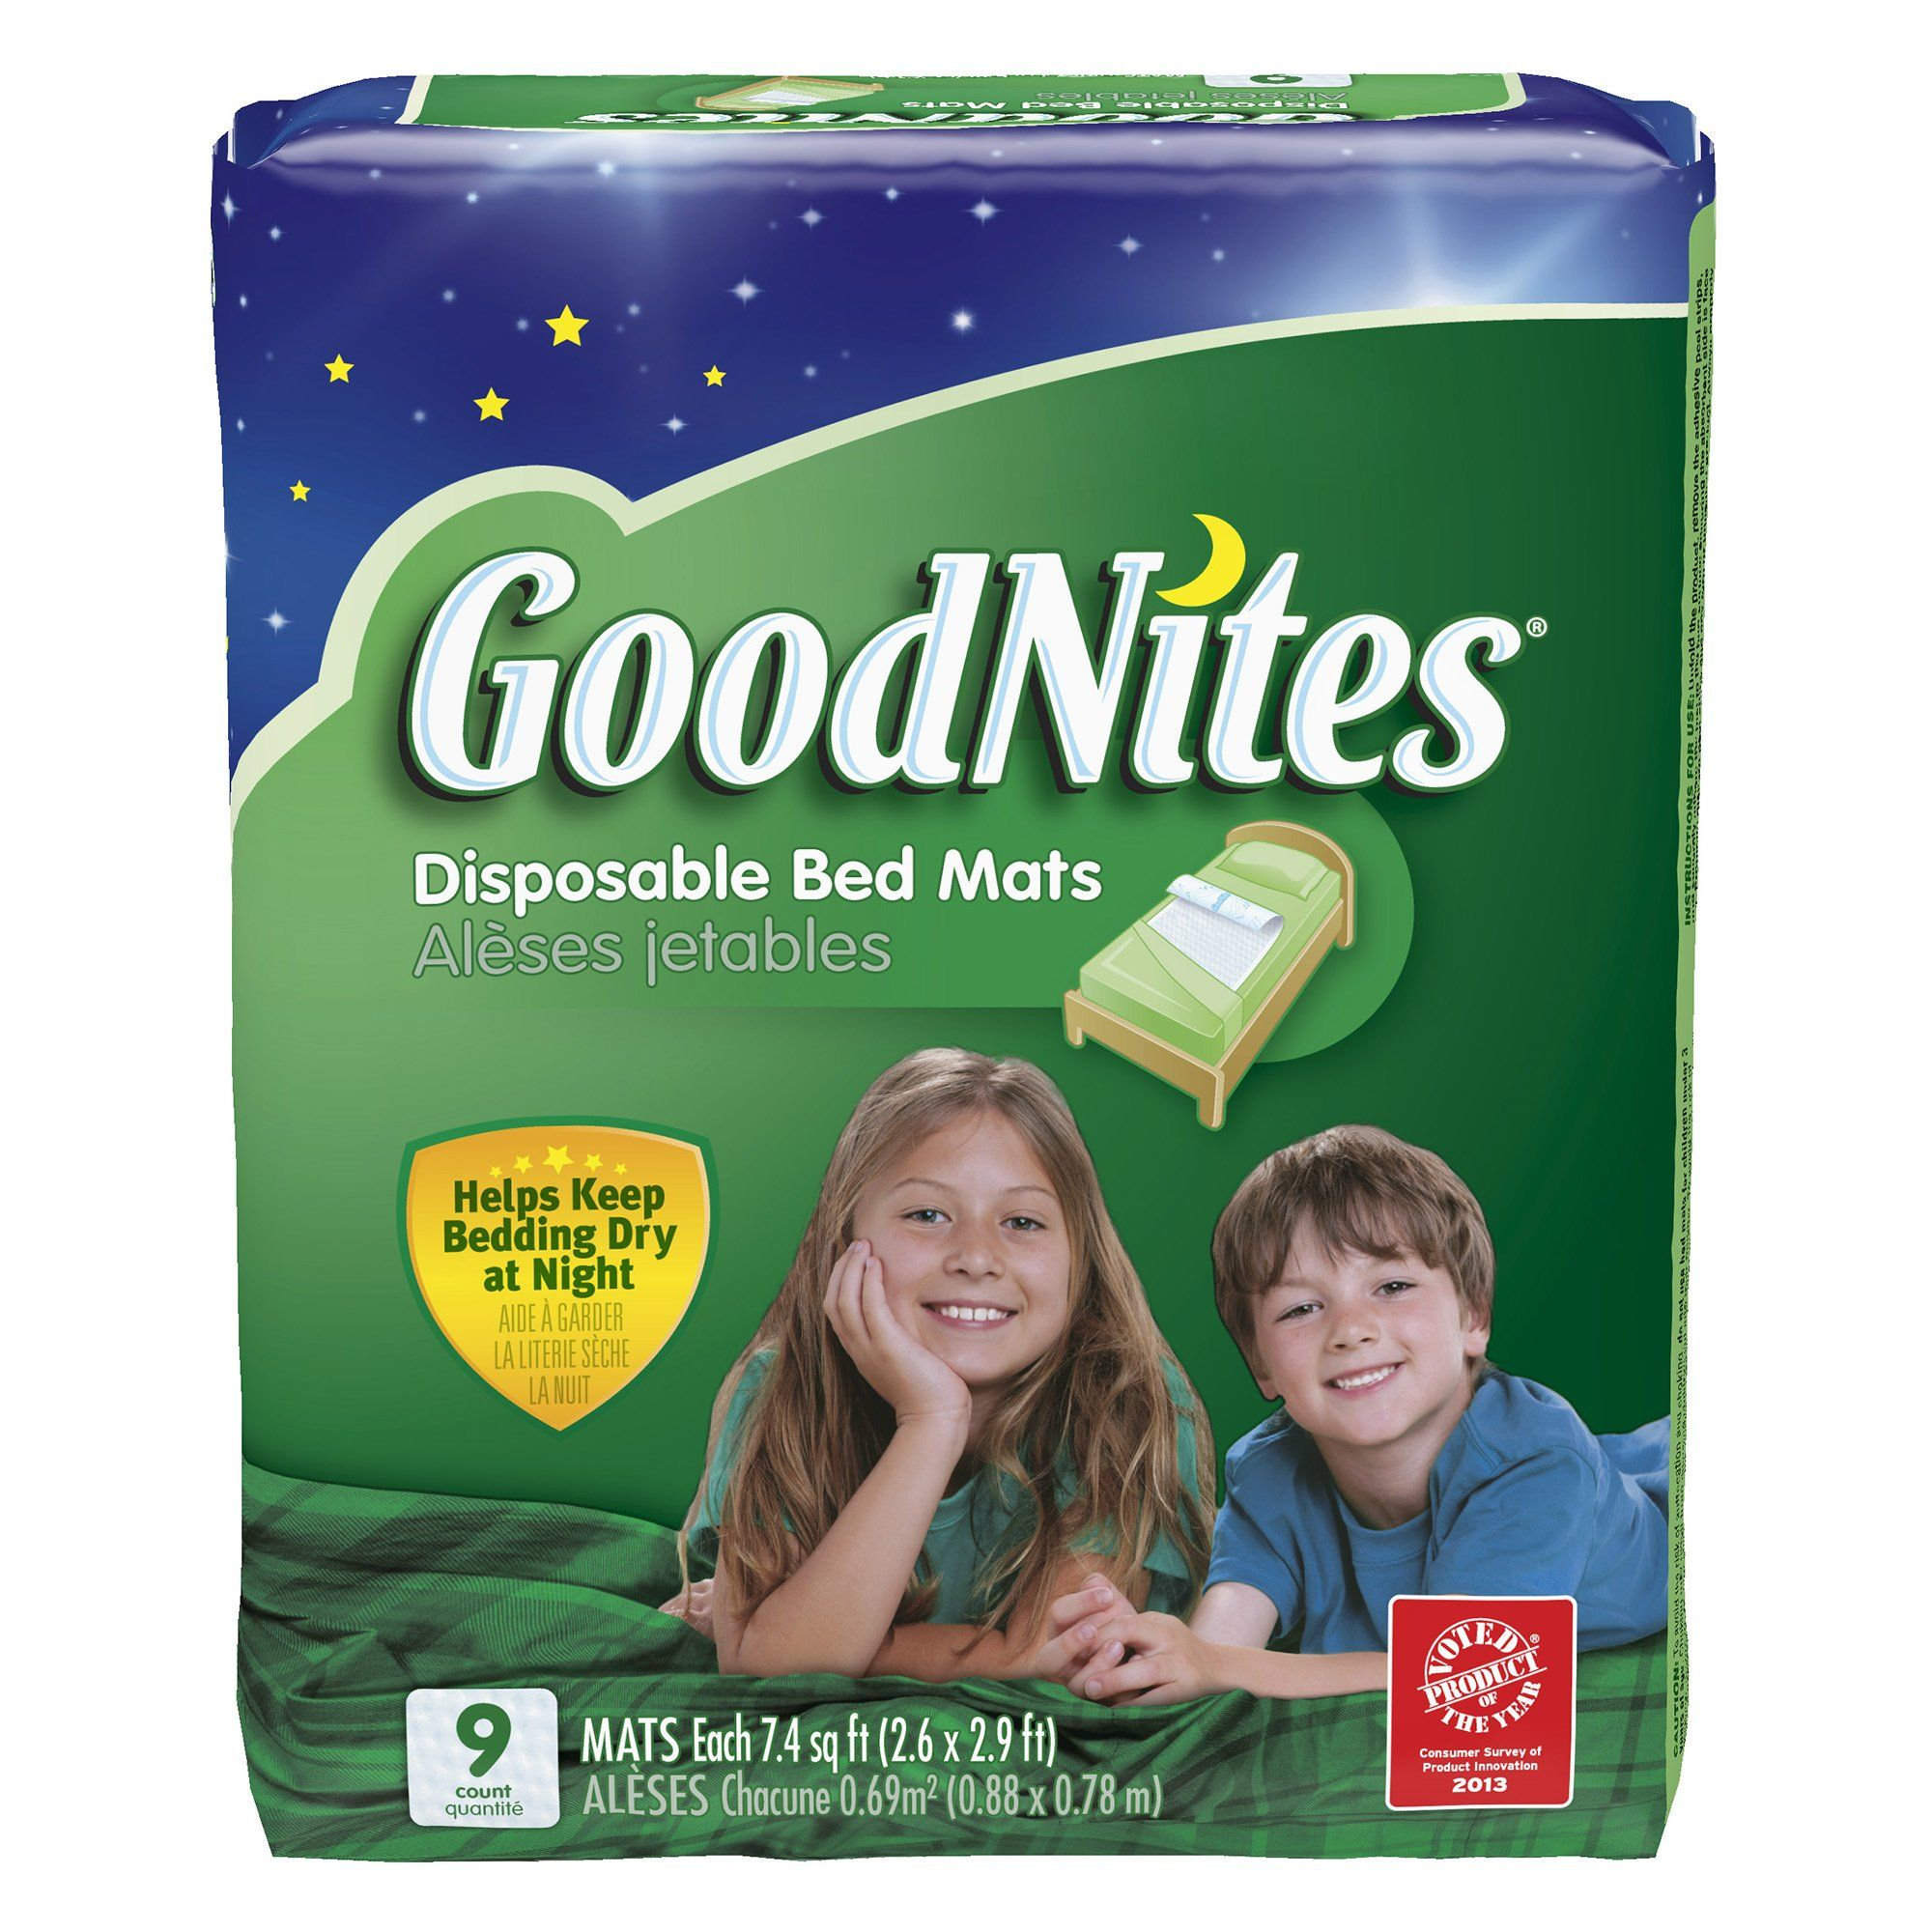 Goodnites Disposable Bed Mats 9 Count Bed Mats